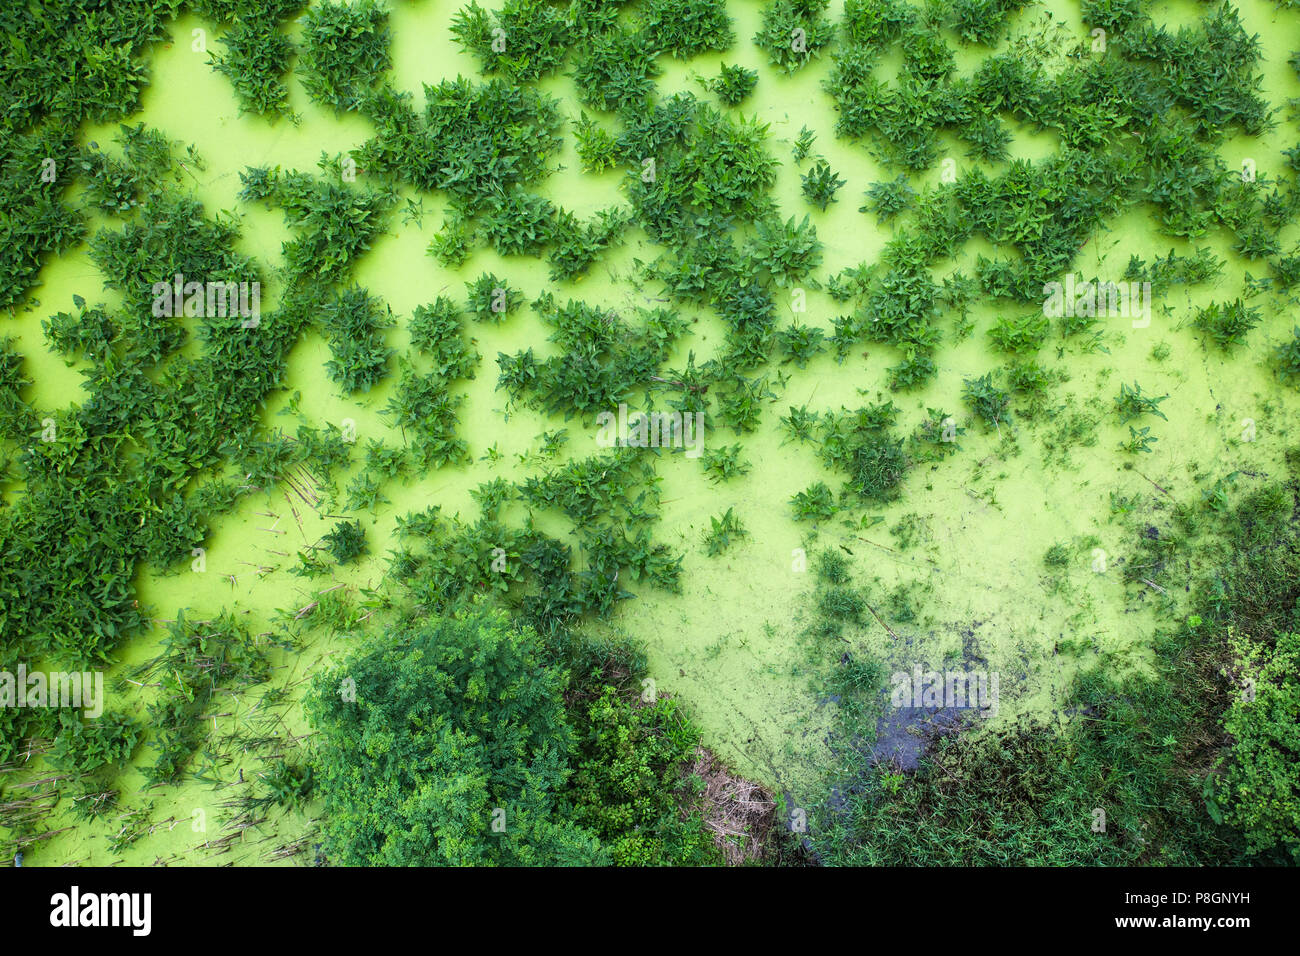 View of green wetland marsh with plants and algae seen from above - Stock Image